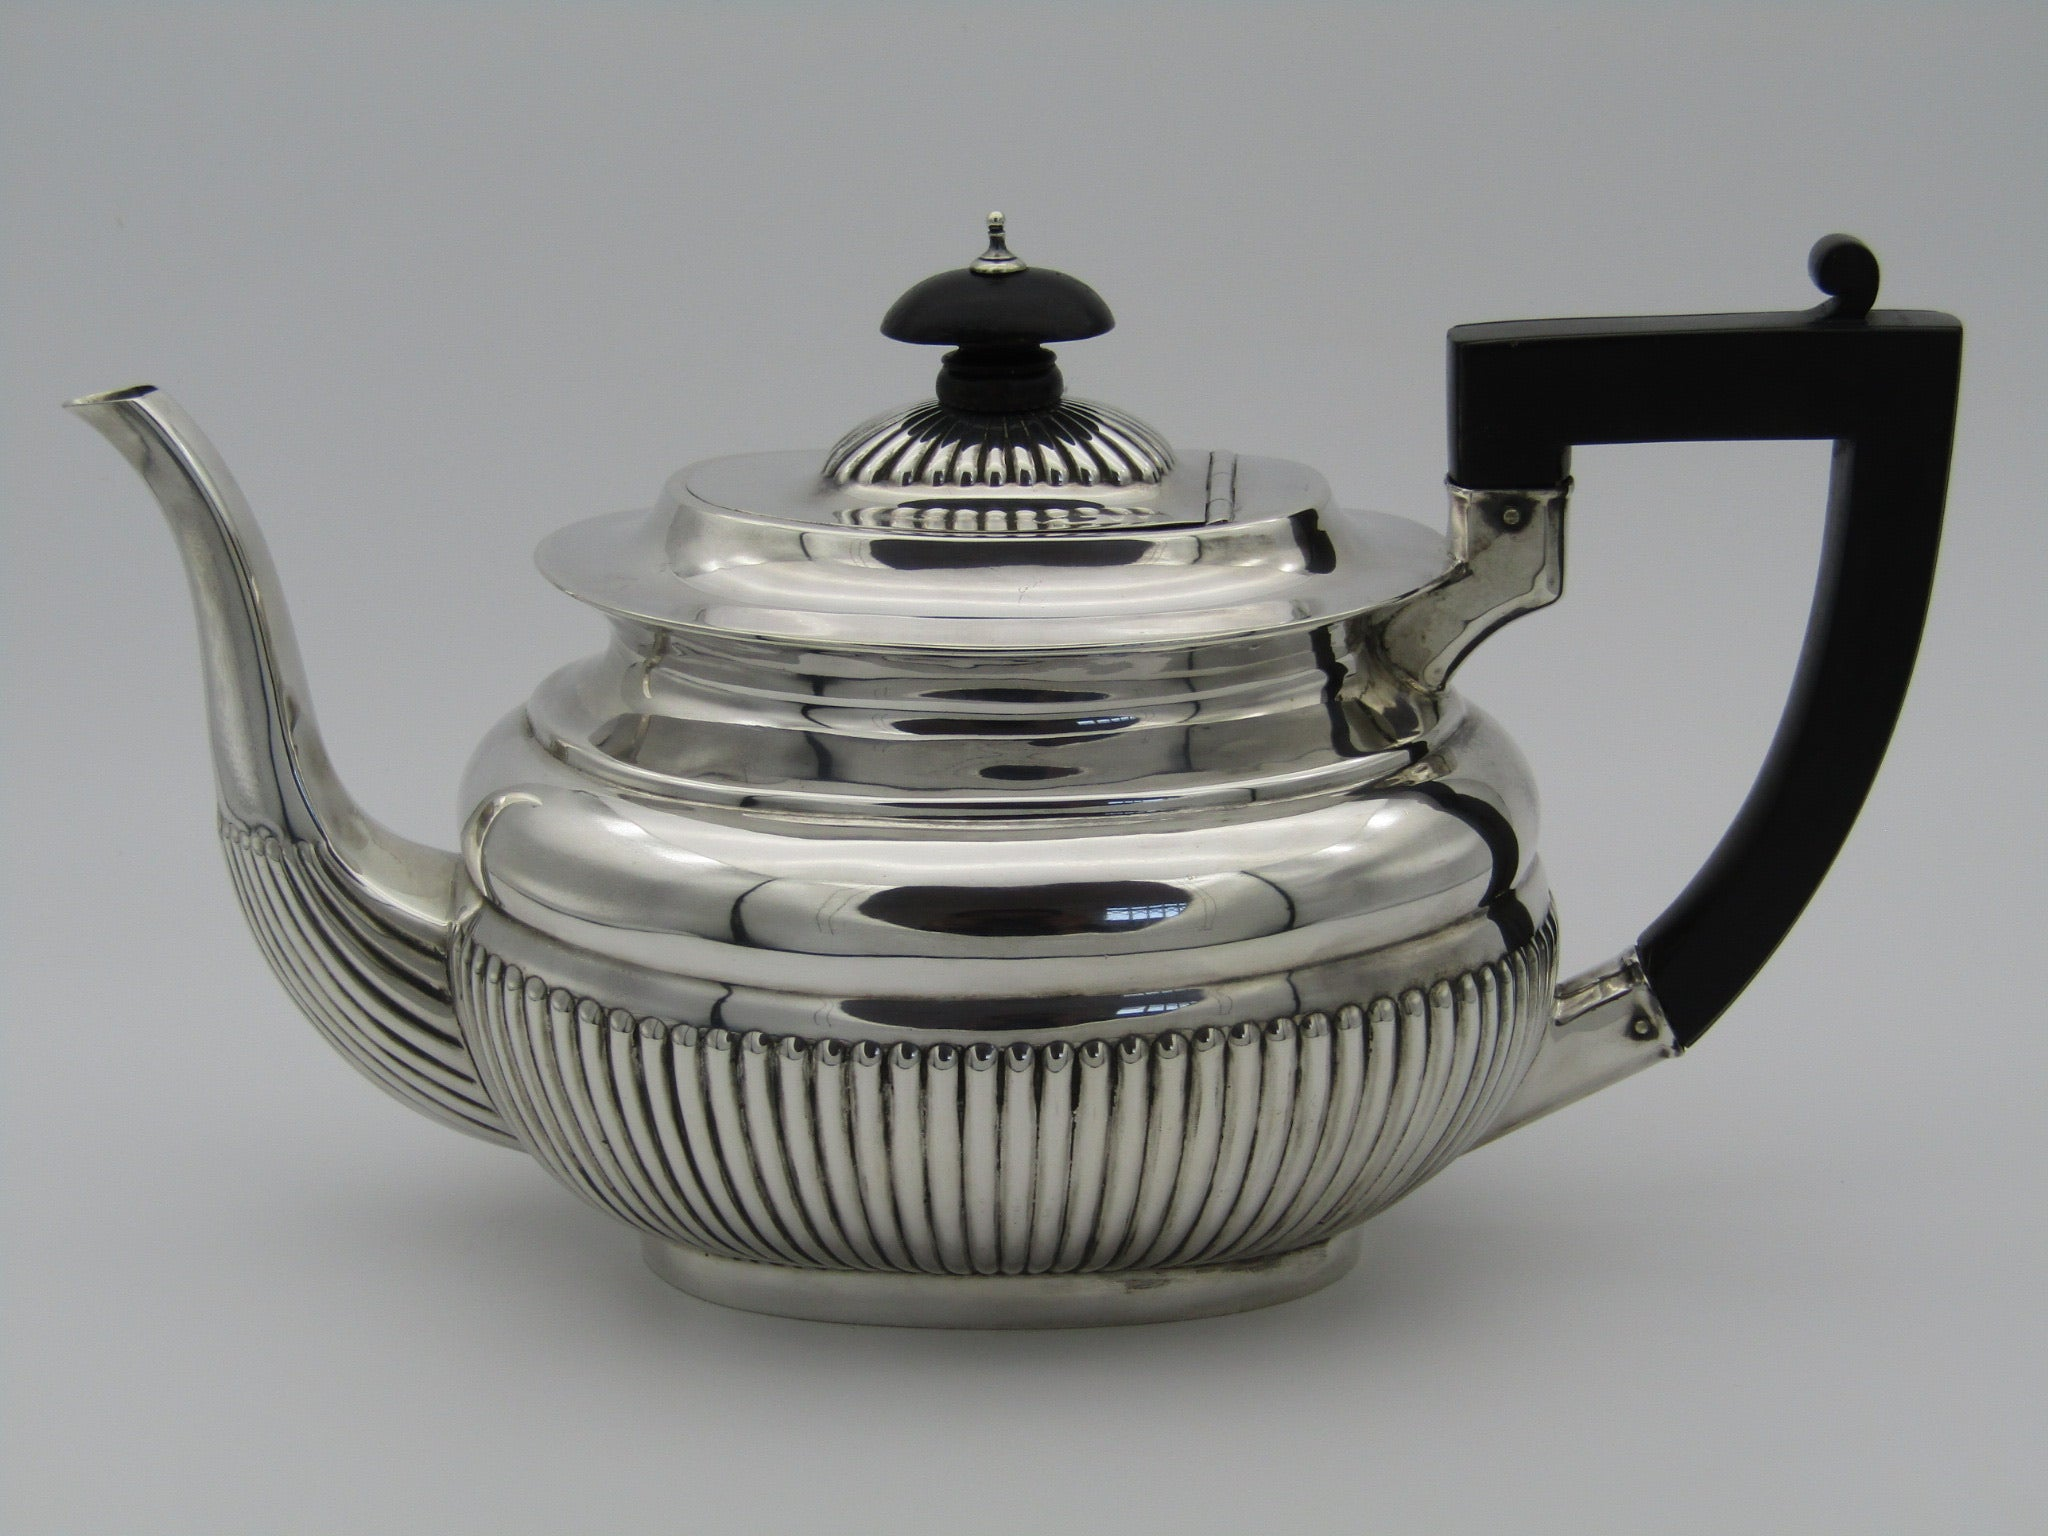 A sterling silver tea set made by Robert Pringle & Sons. London, 1901.